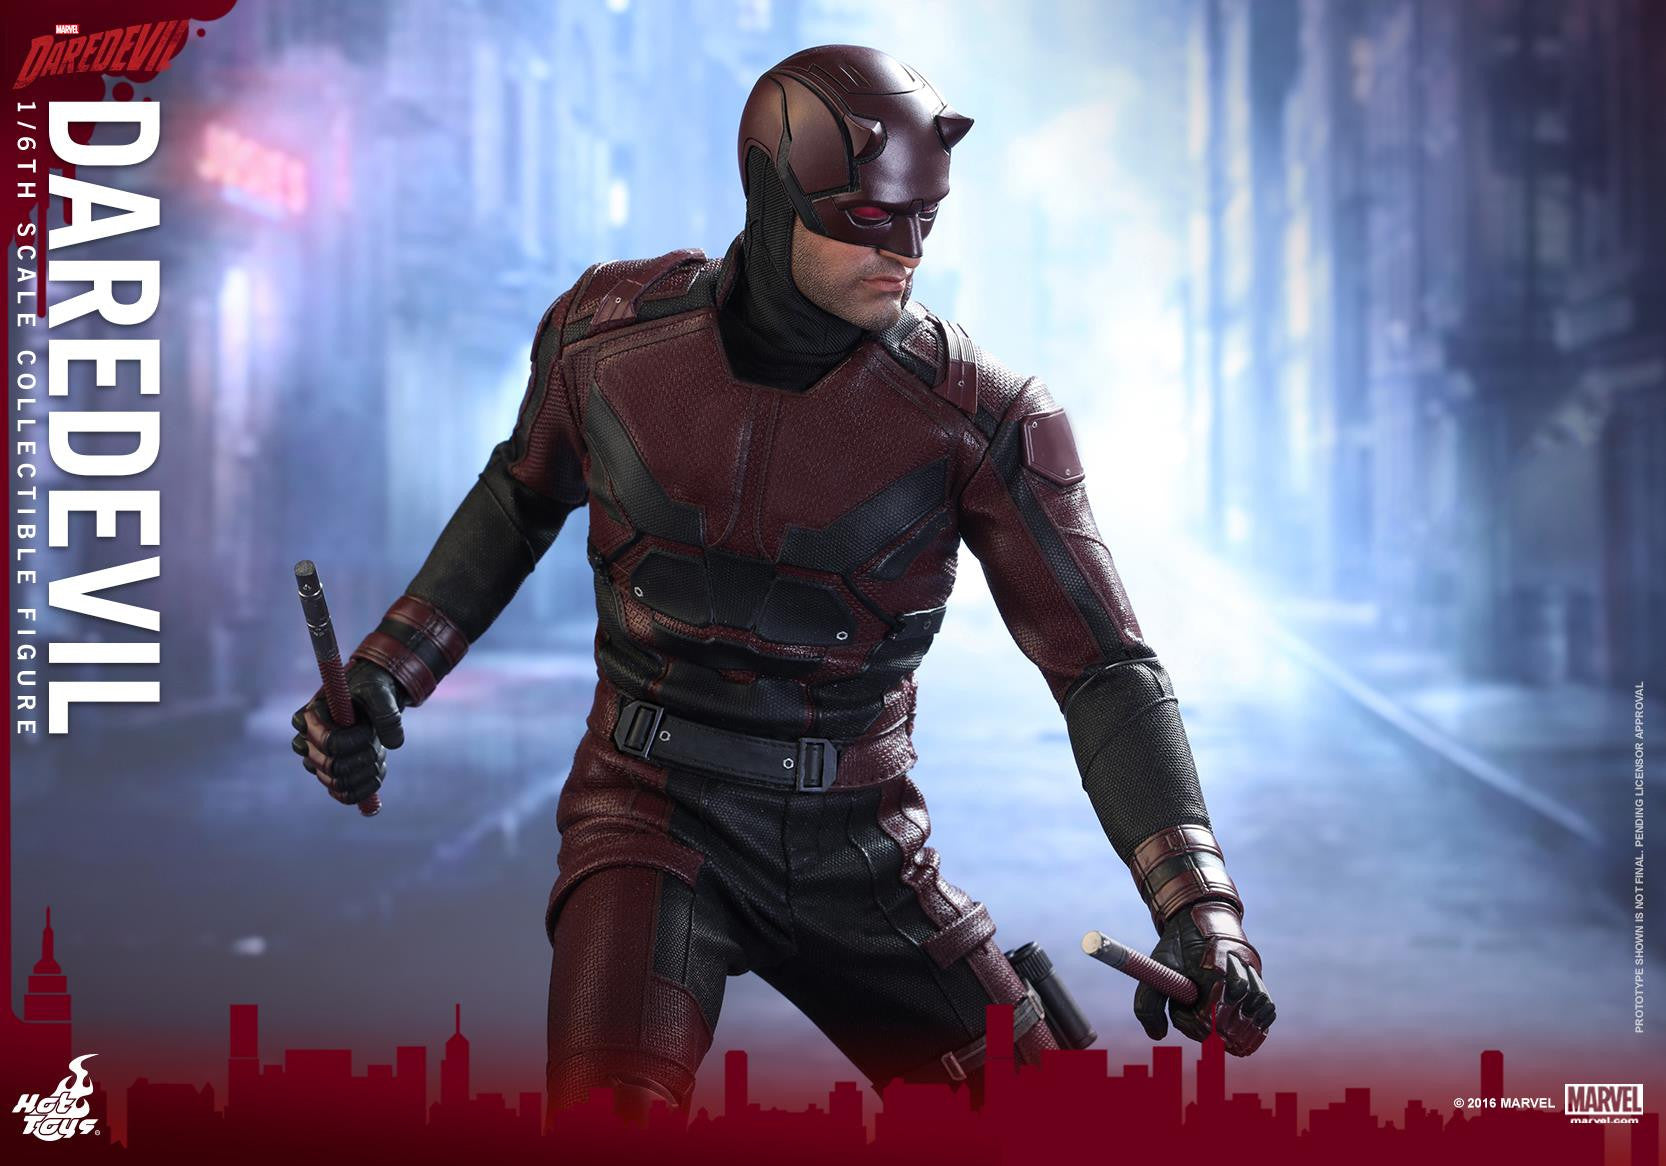 Hot Toys - TMS003 - Marvel's Daredevil - Daredevil - Marvelous Toys - 16